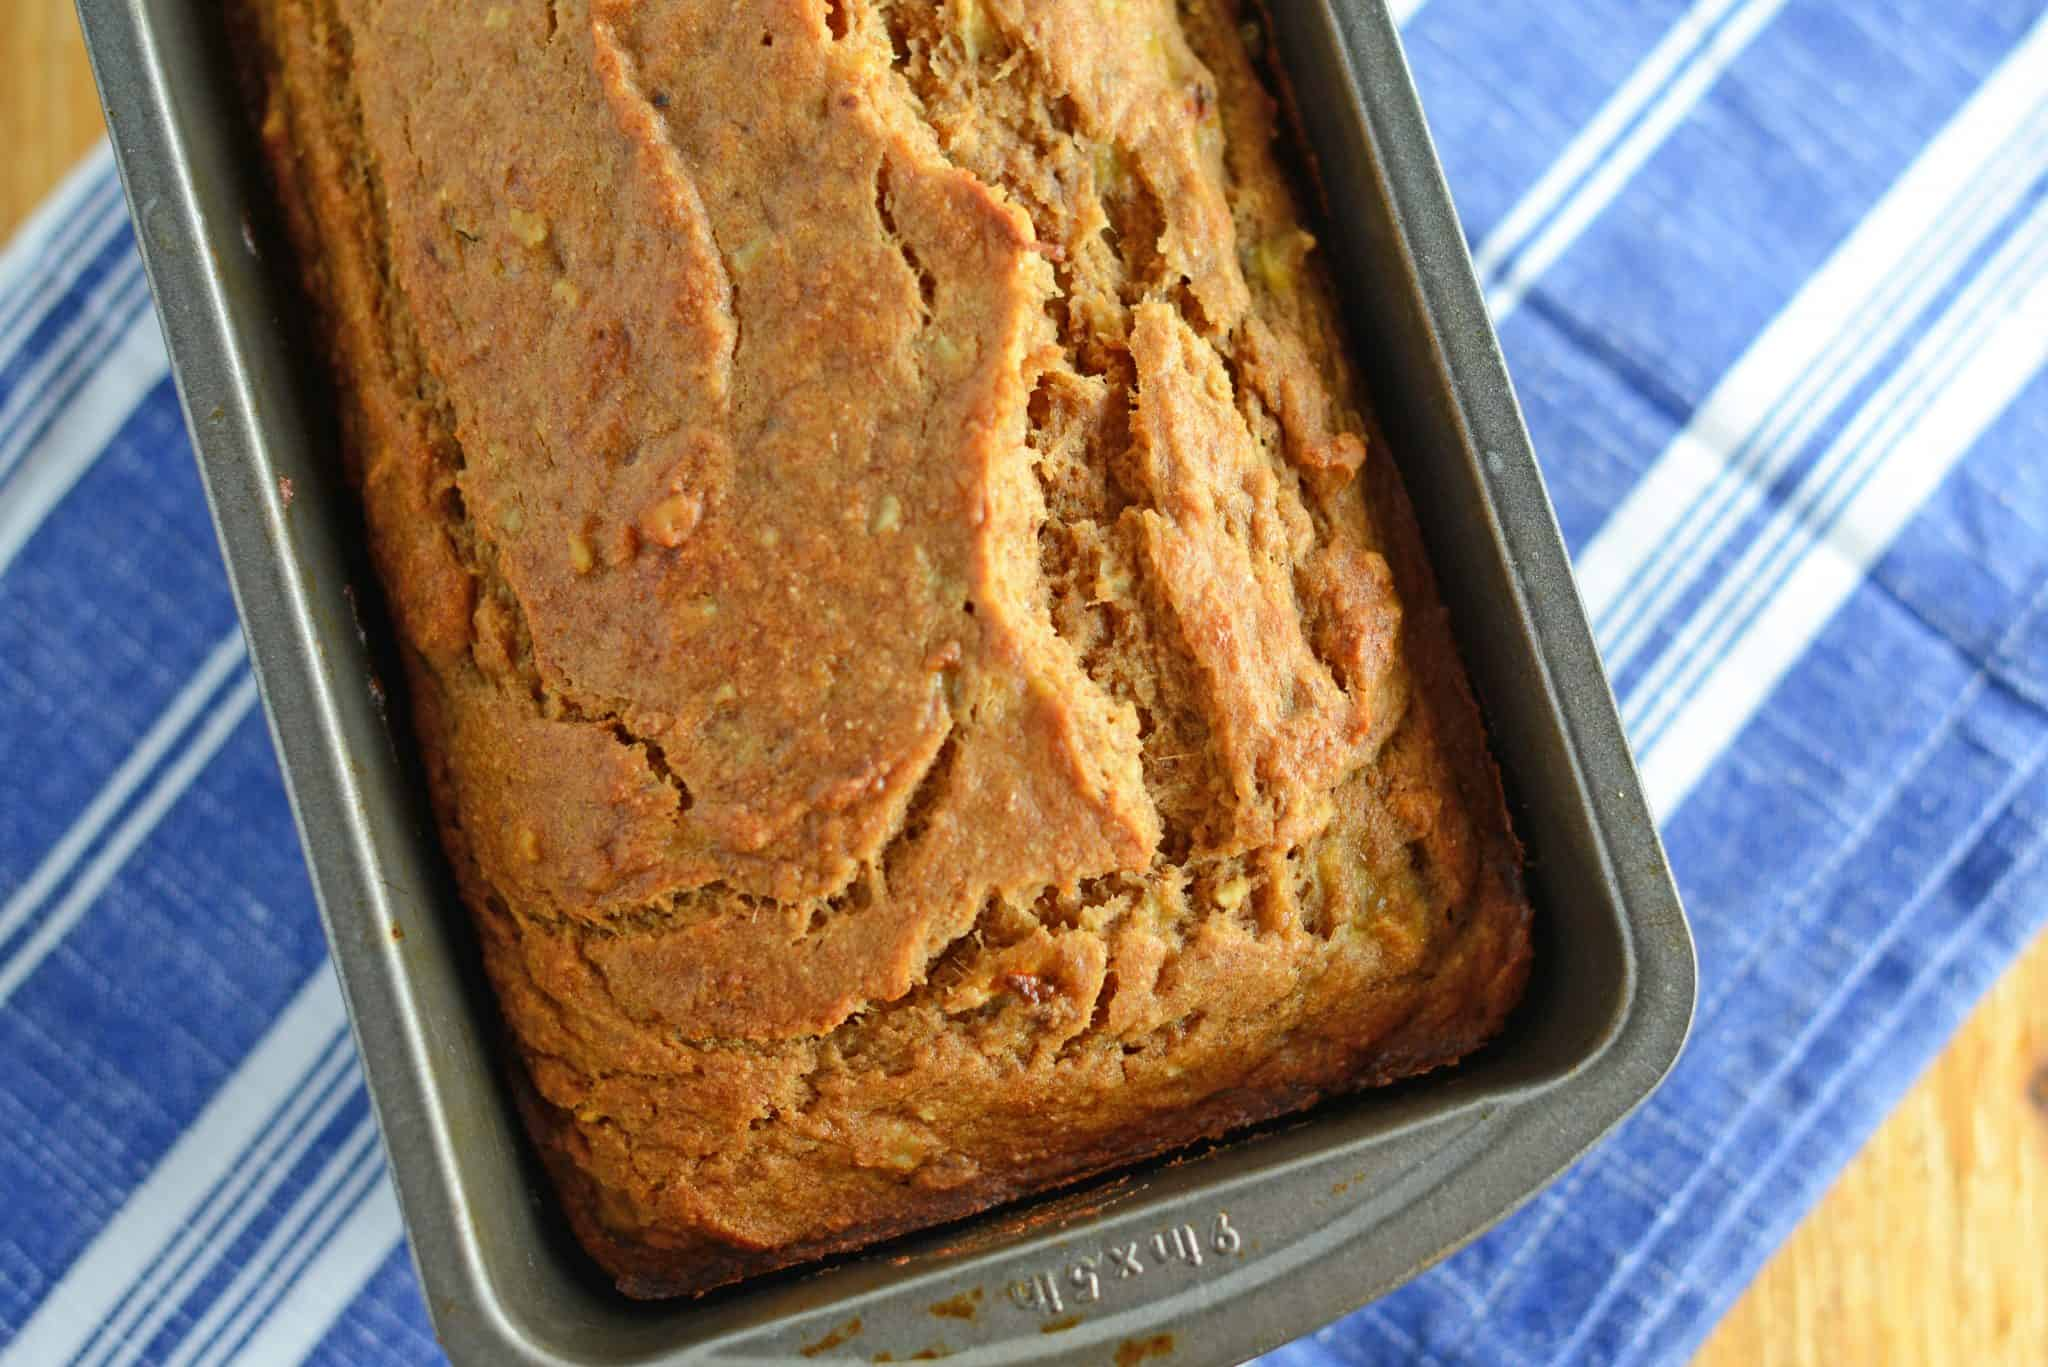 Whole Wheat Banana Bread is a healthier version of regular banana bread. Add pecans or walnuts or even more flavor!